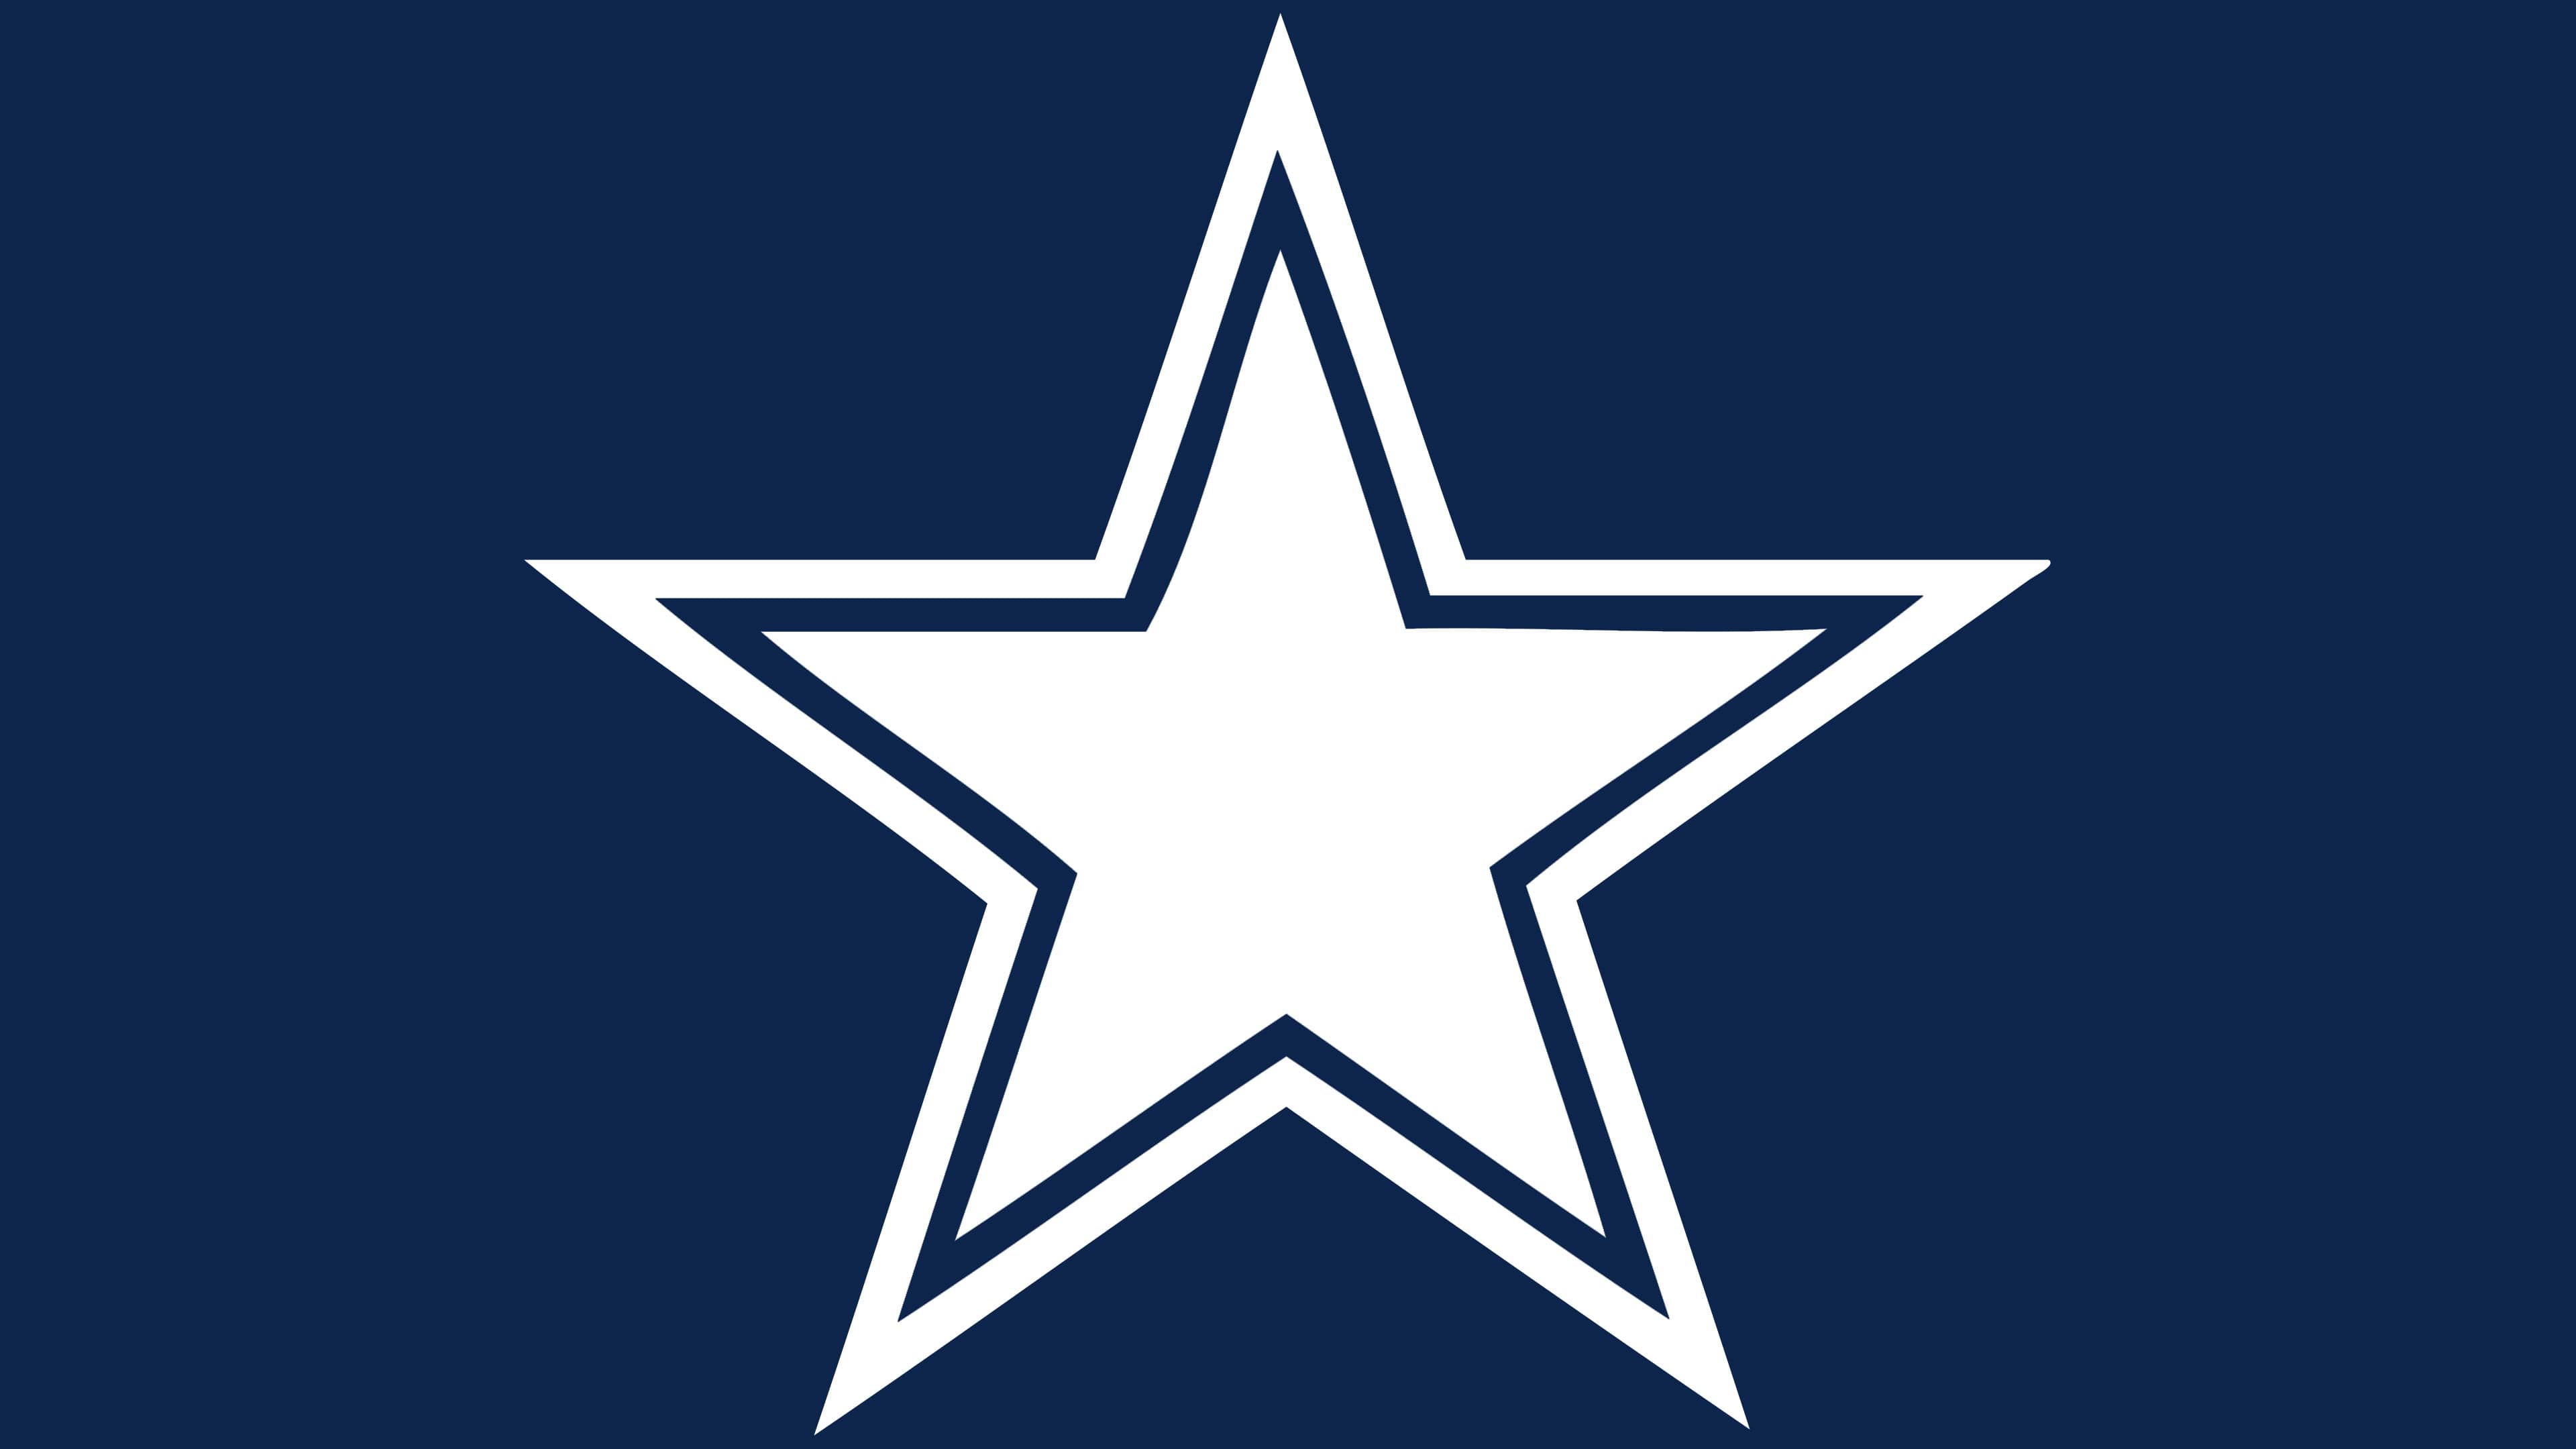 Dallas Cowboys Logos.